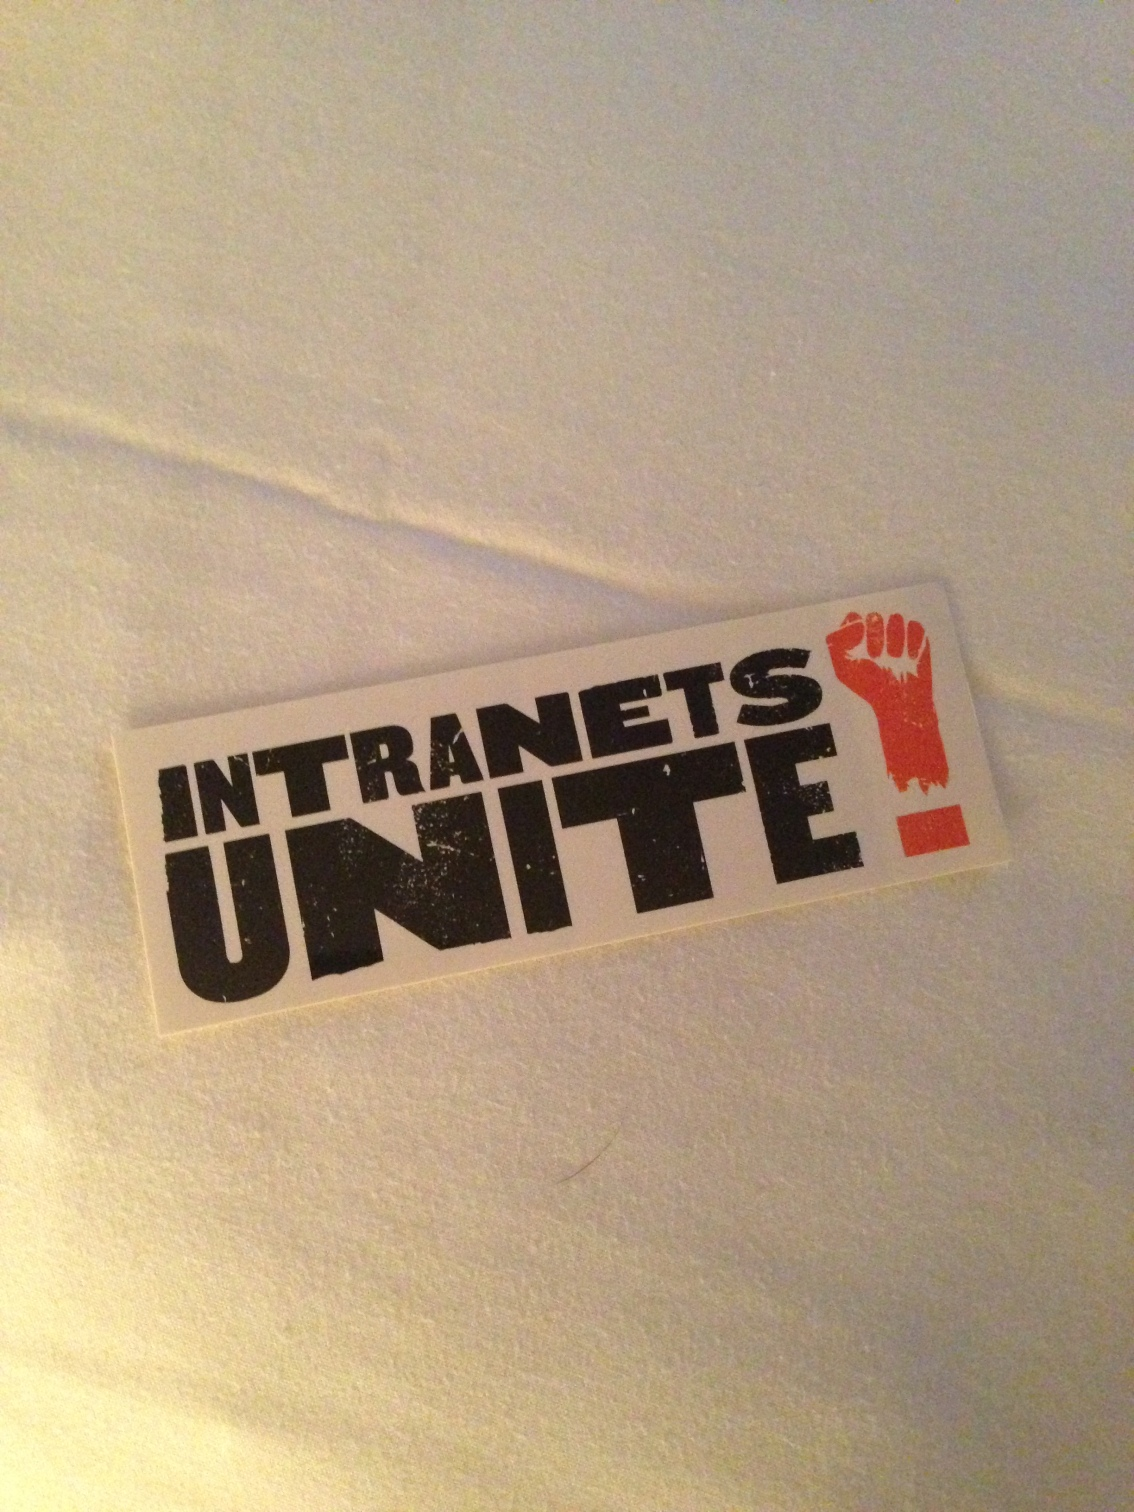 'Intranets Unite' sticker developed by StepTwo Designs for Intranets2013